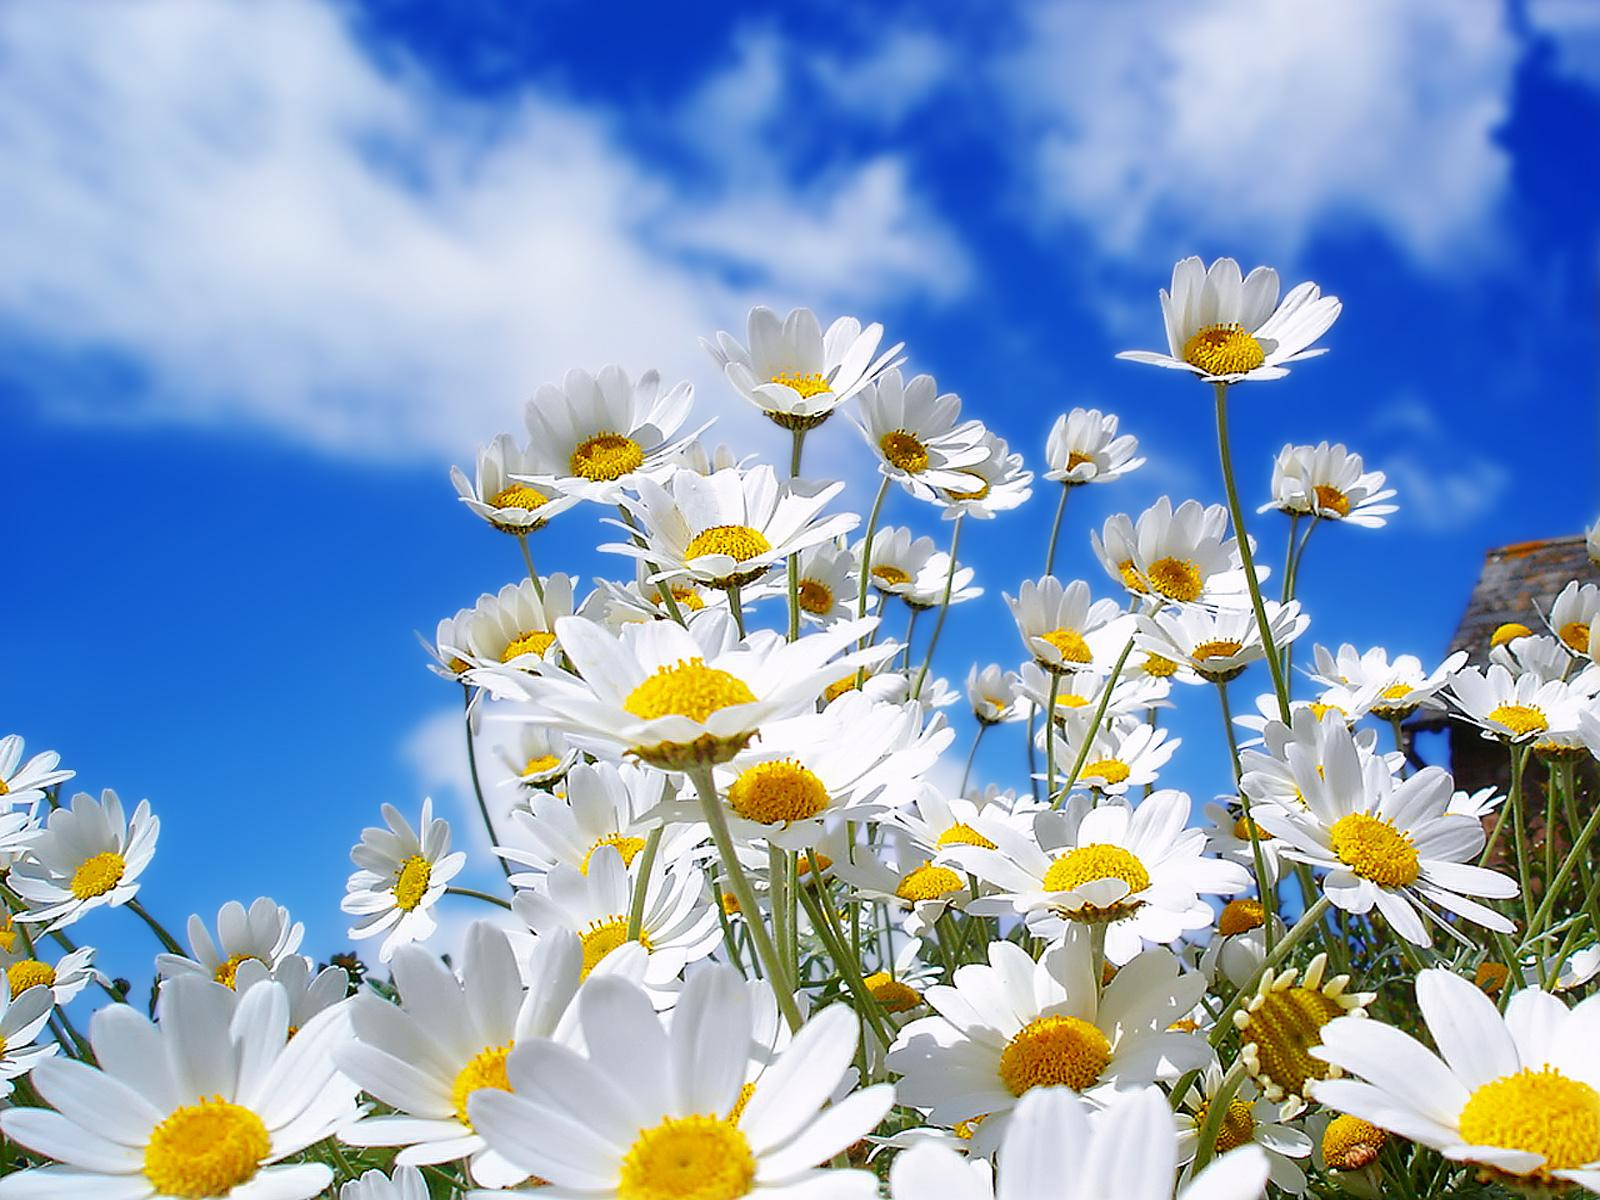 spring daisy flowers wallpapers hd pictures free download